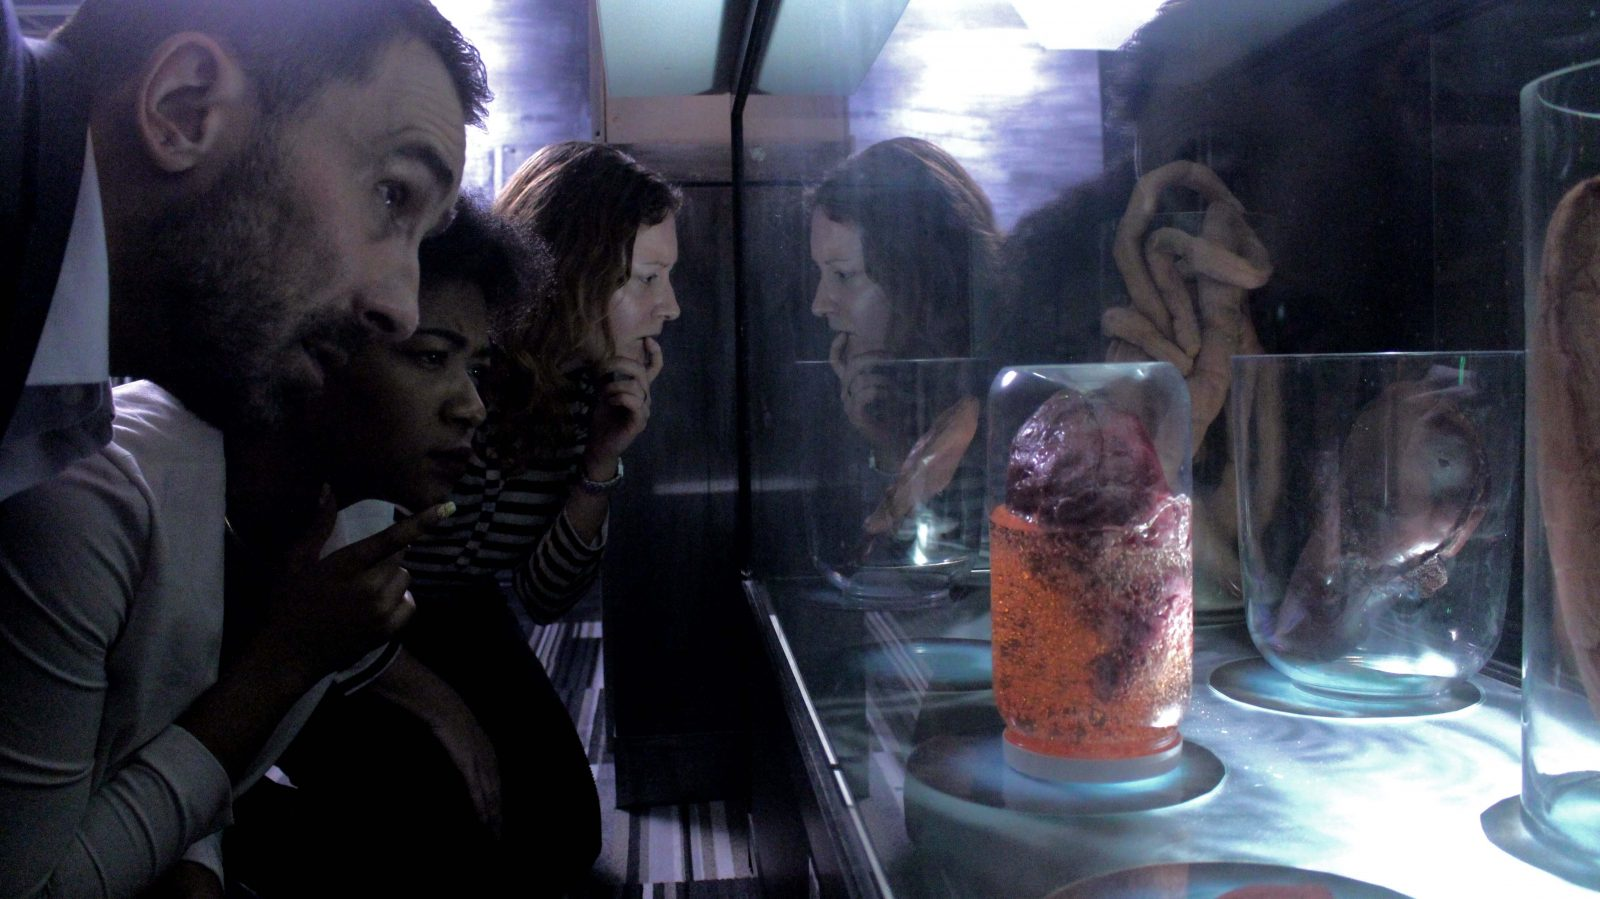 Three players in the alien encounter escape room looking closely at a container with a mysterious organ floating in goo.